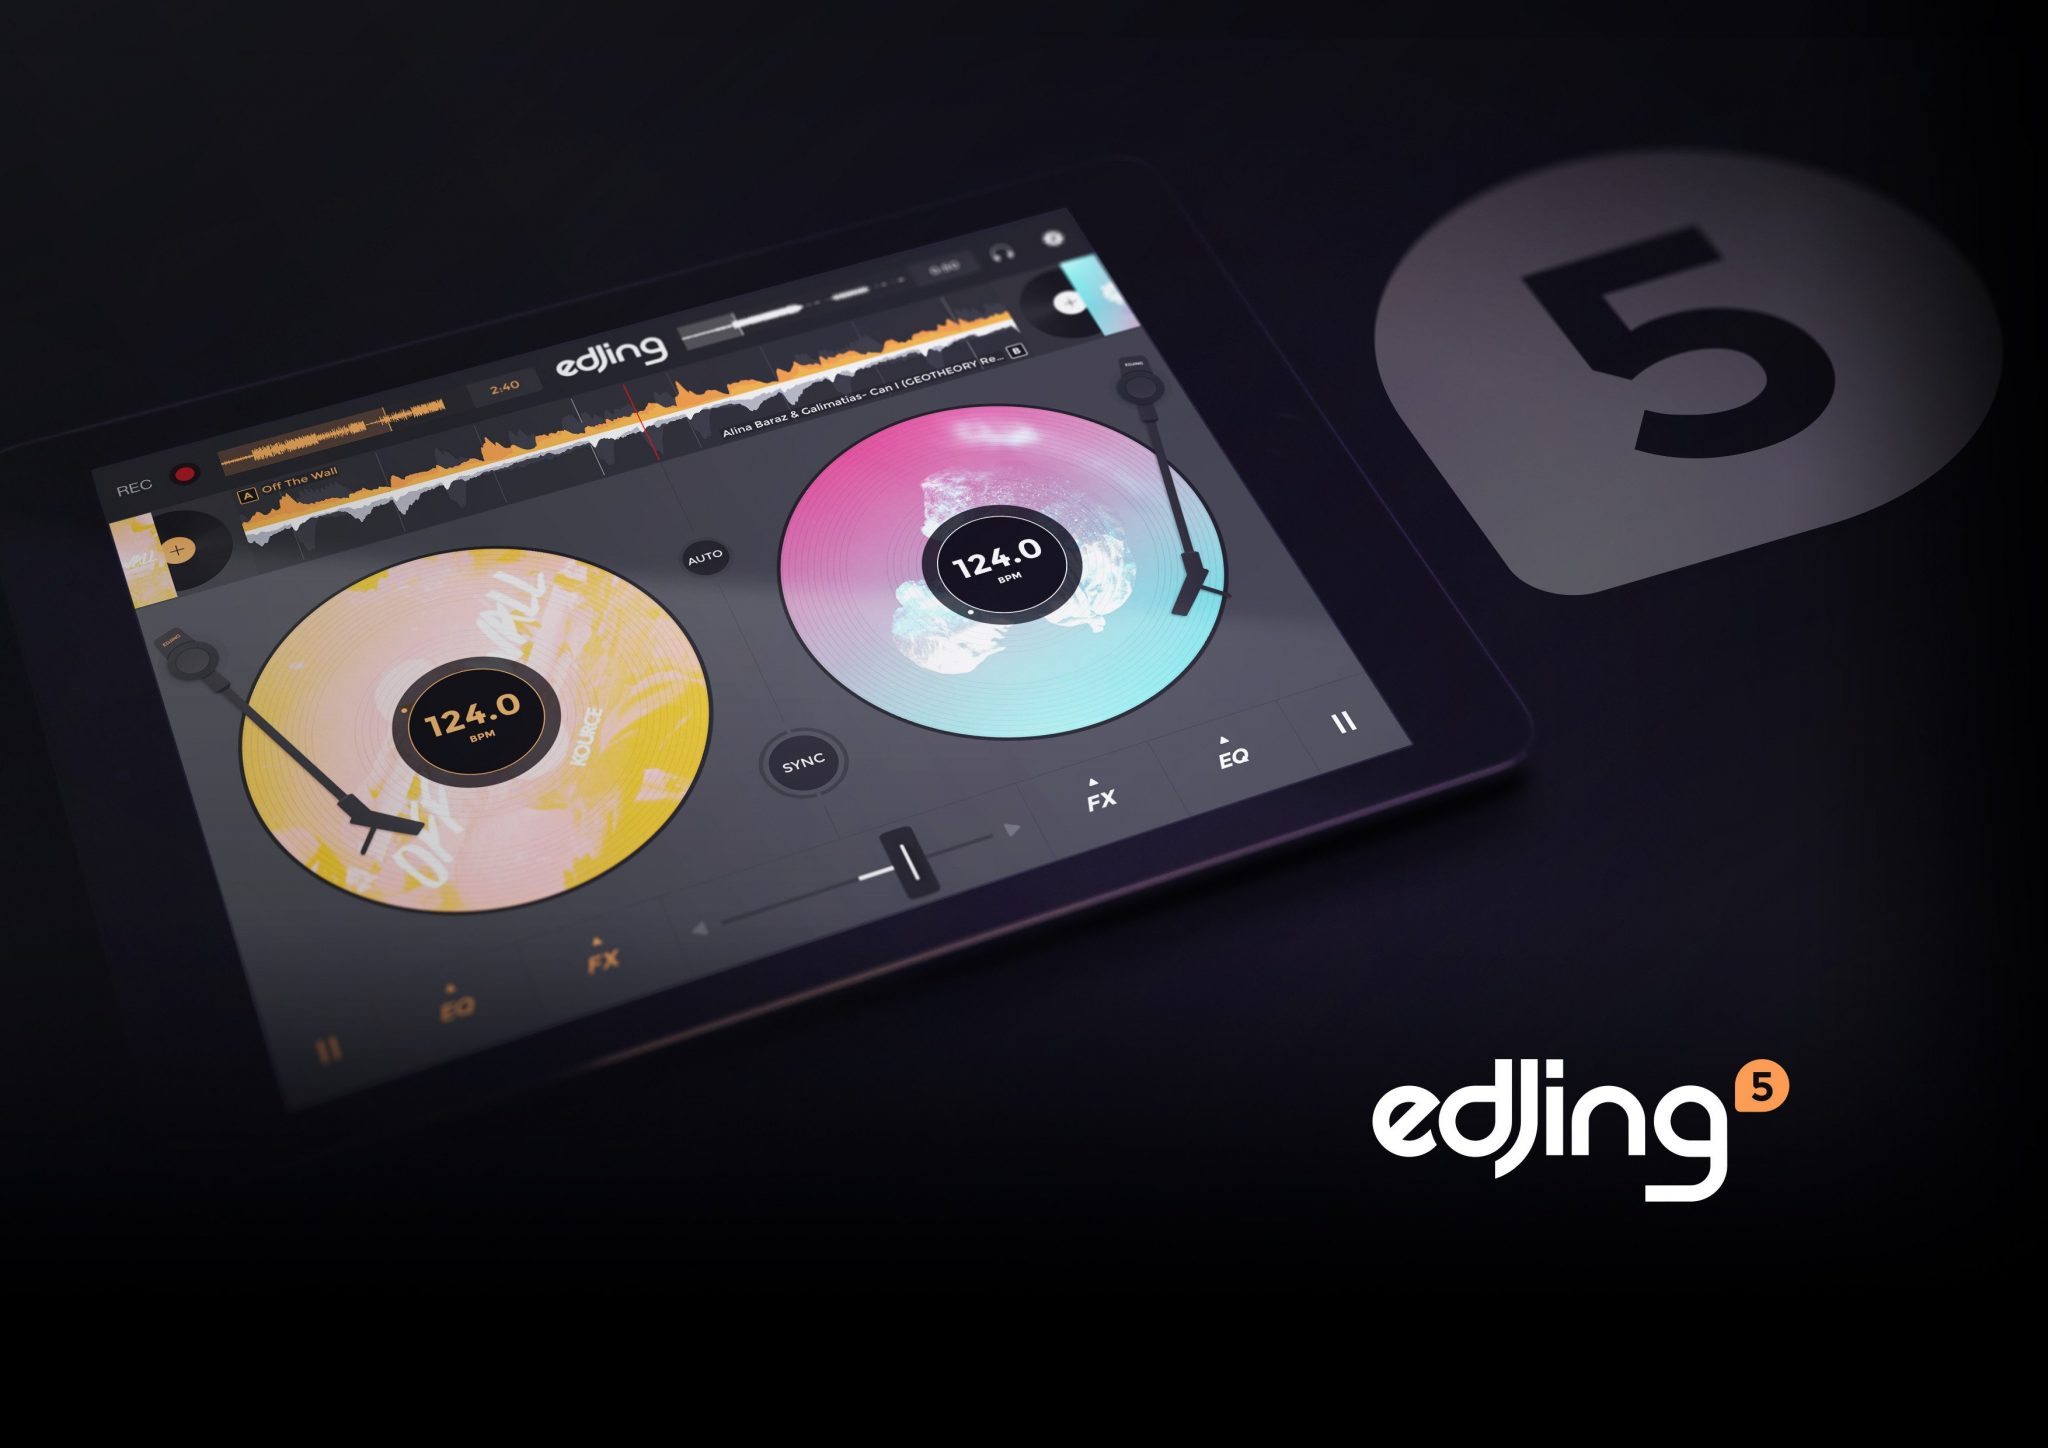 Edjing for windows 7 - Edjing 5 Intro